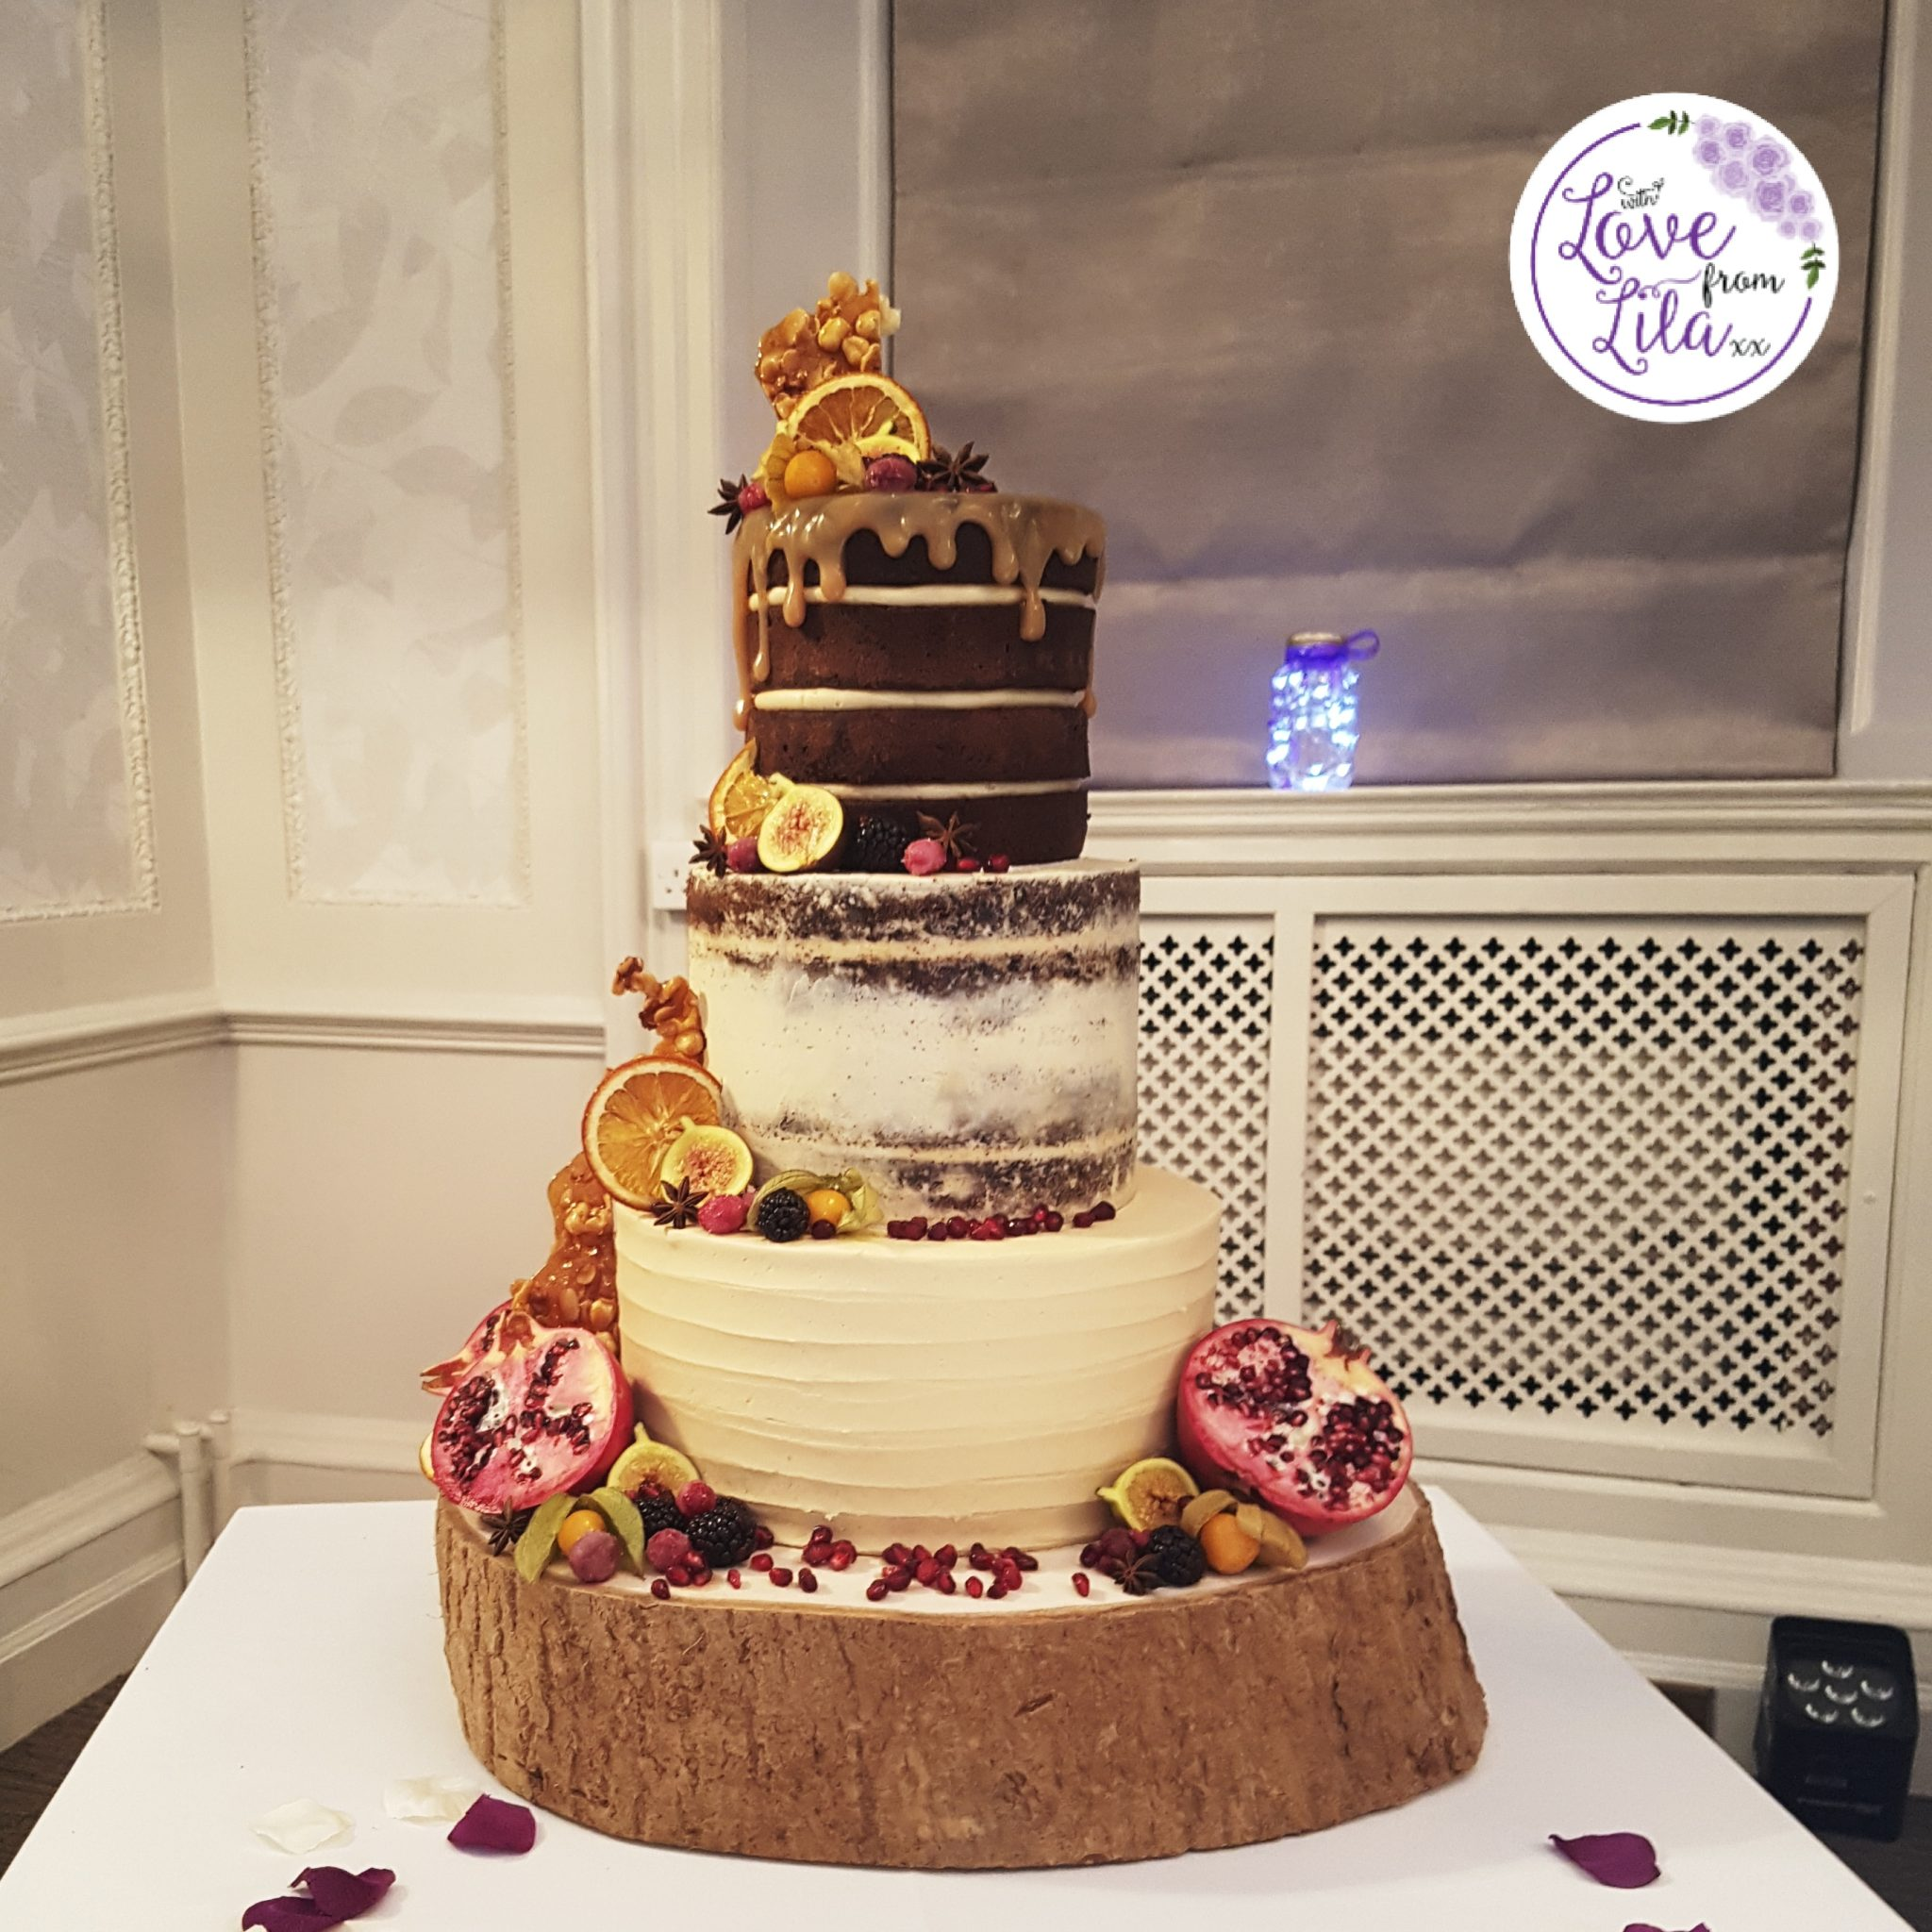 Love from lila xx - Guildford Wedding Cakes